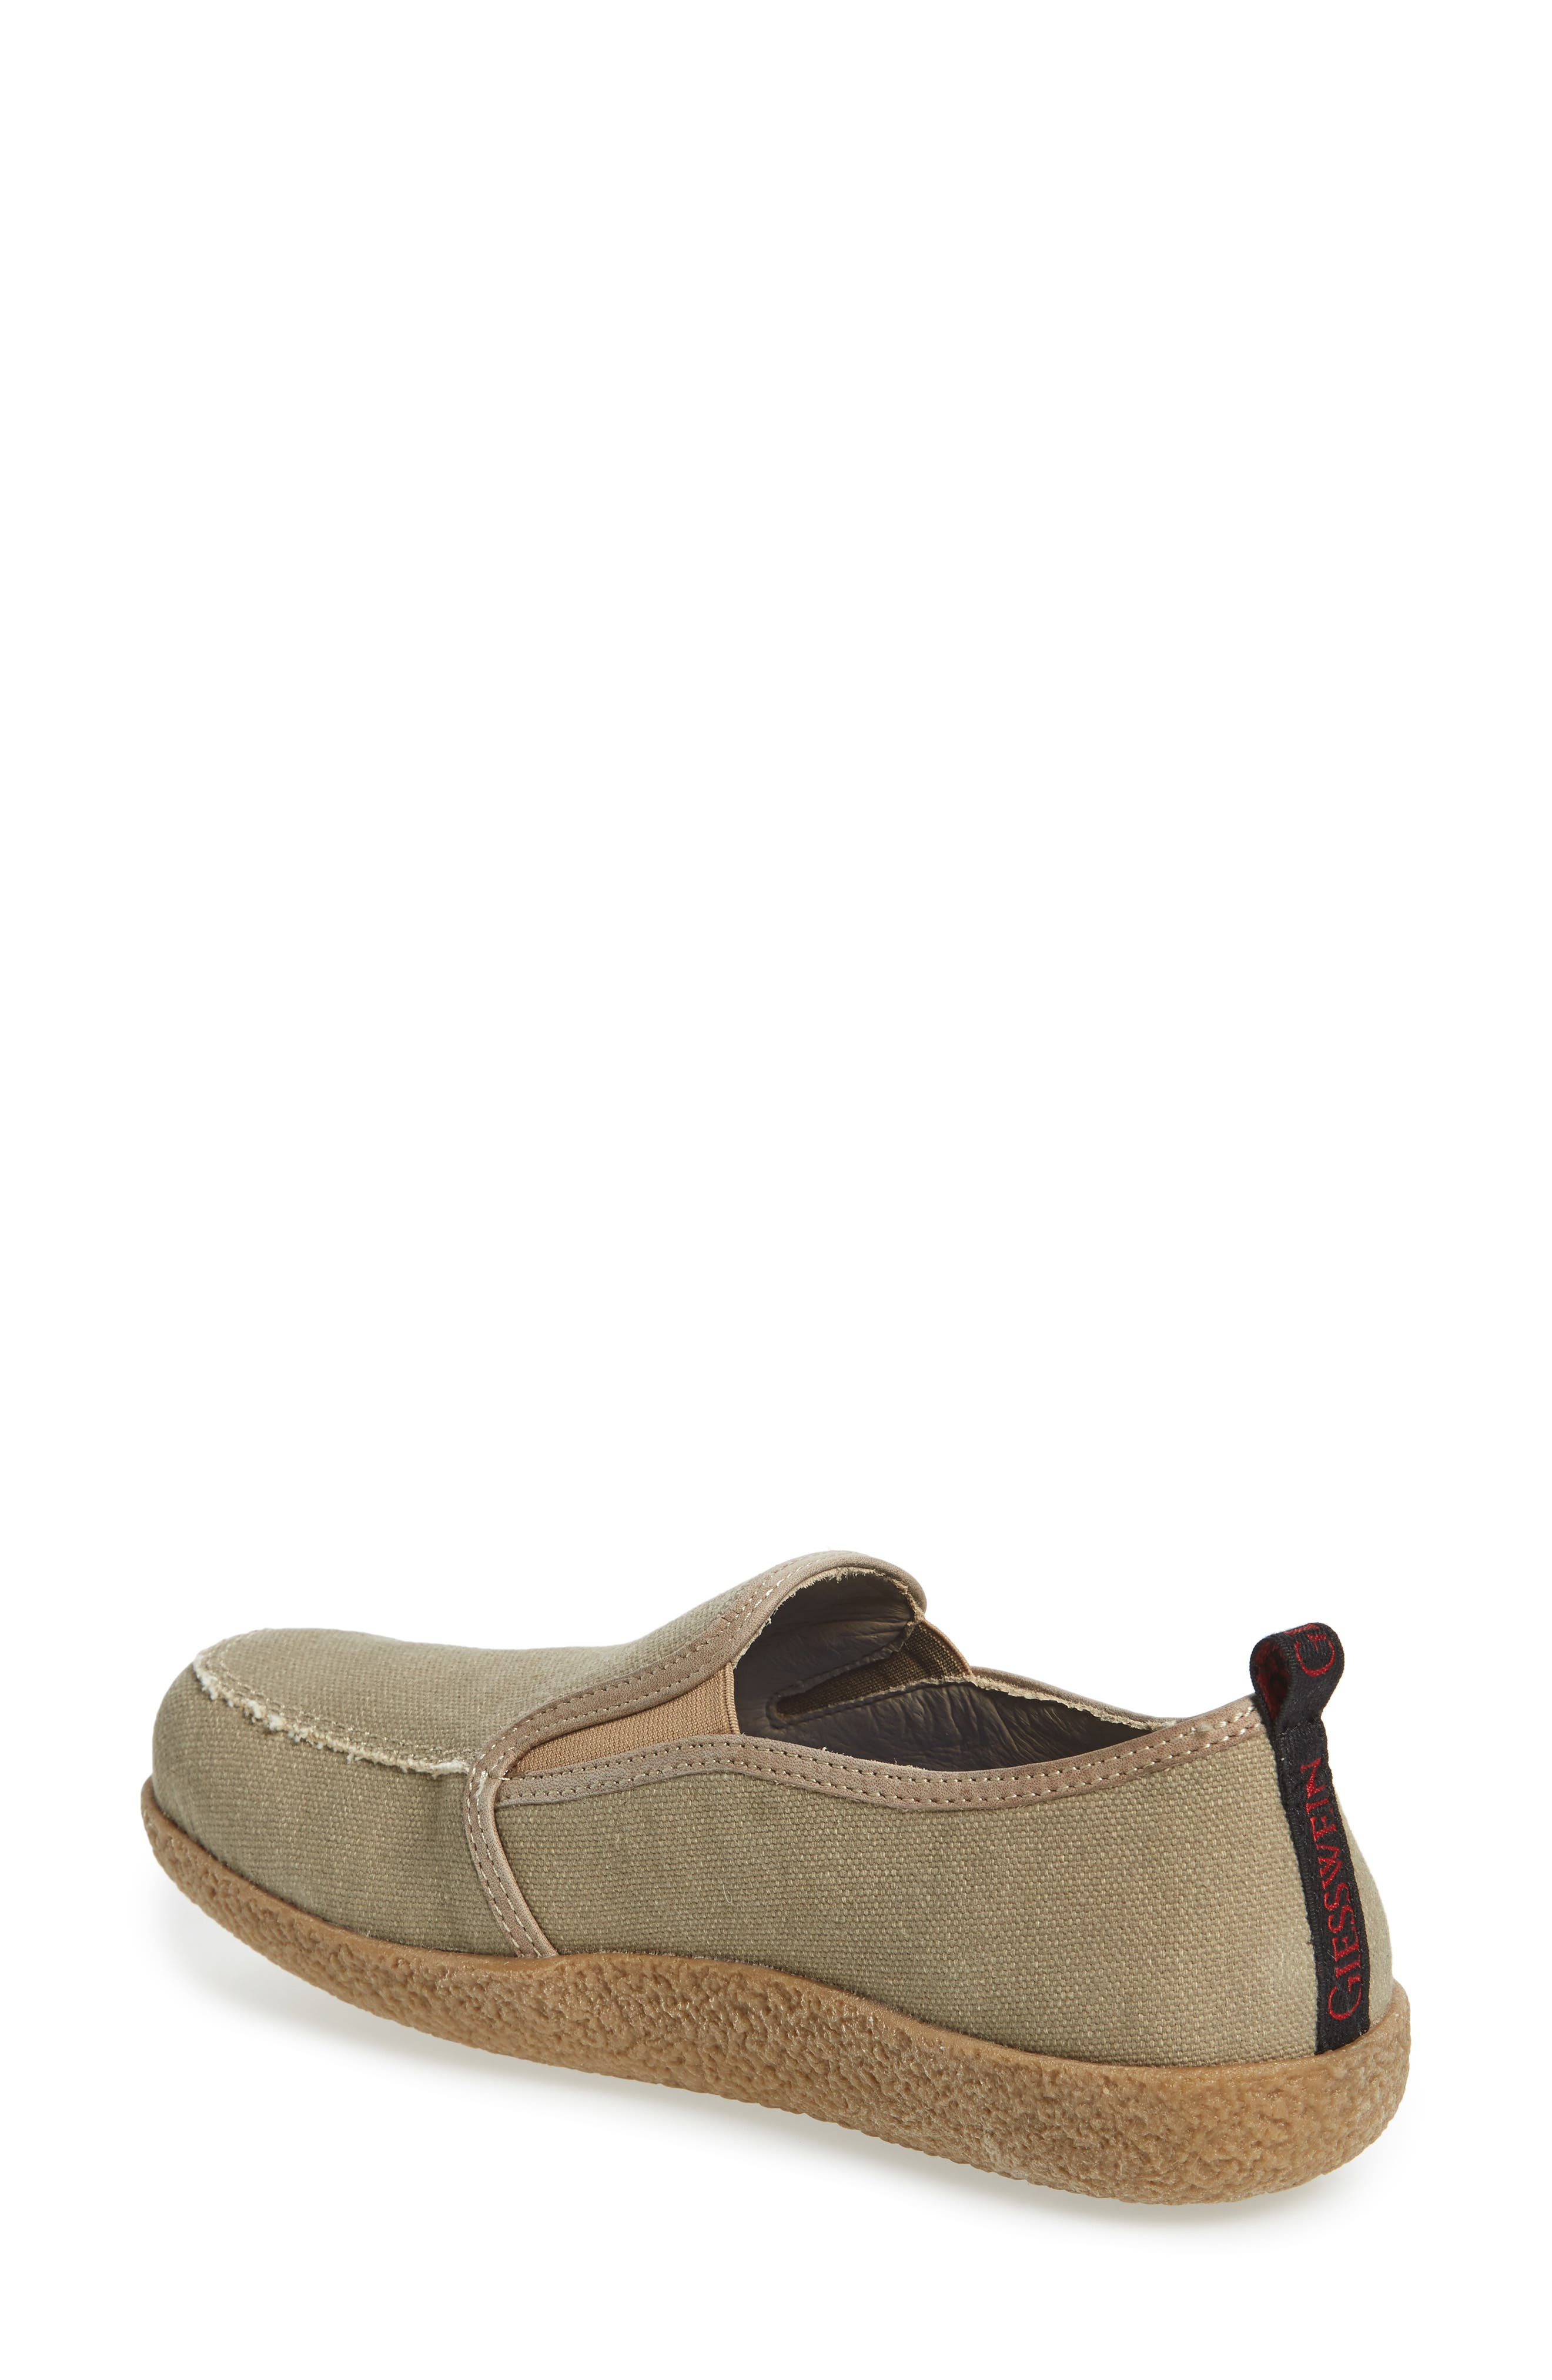 Reith Loafer,                             Alternate thumbnail 2, color,                             Sesame Leather